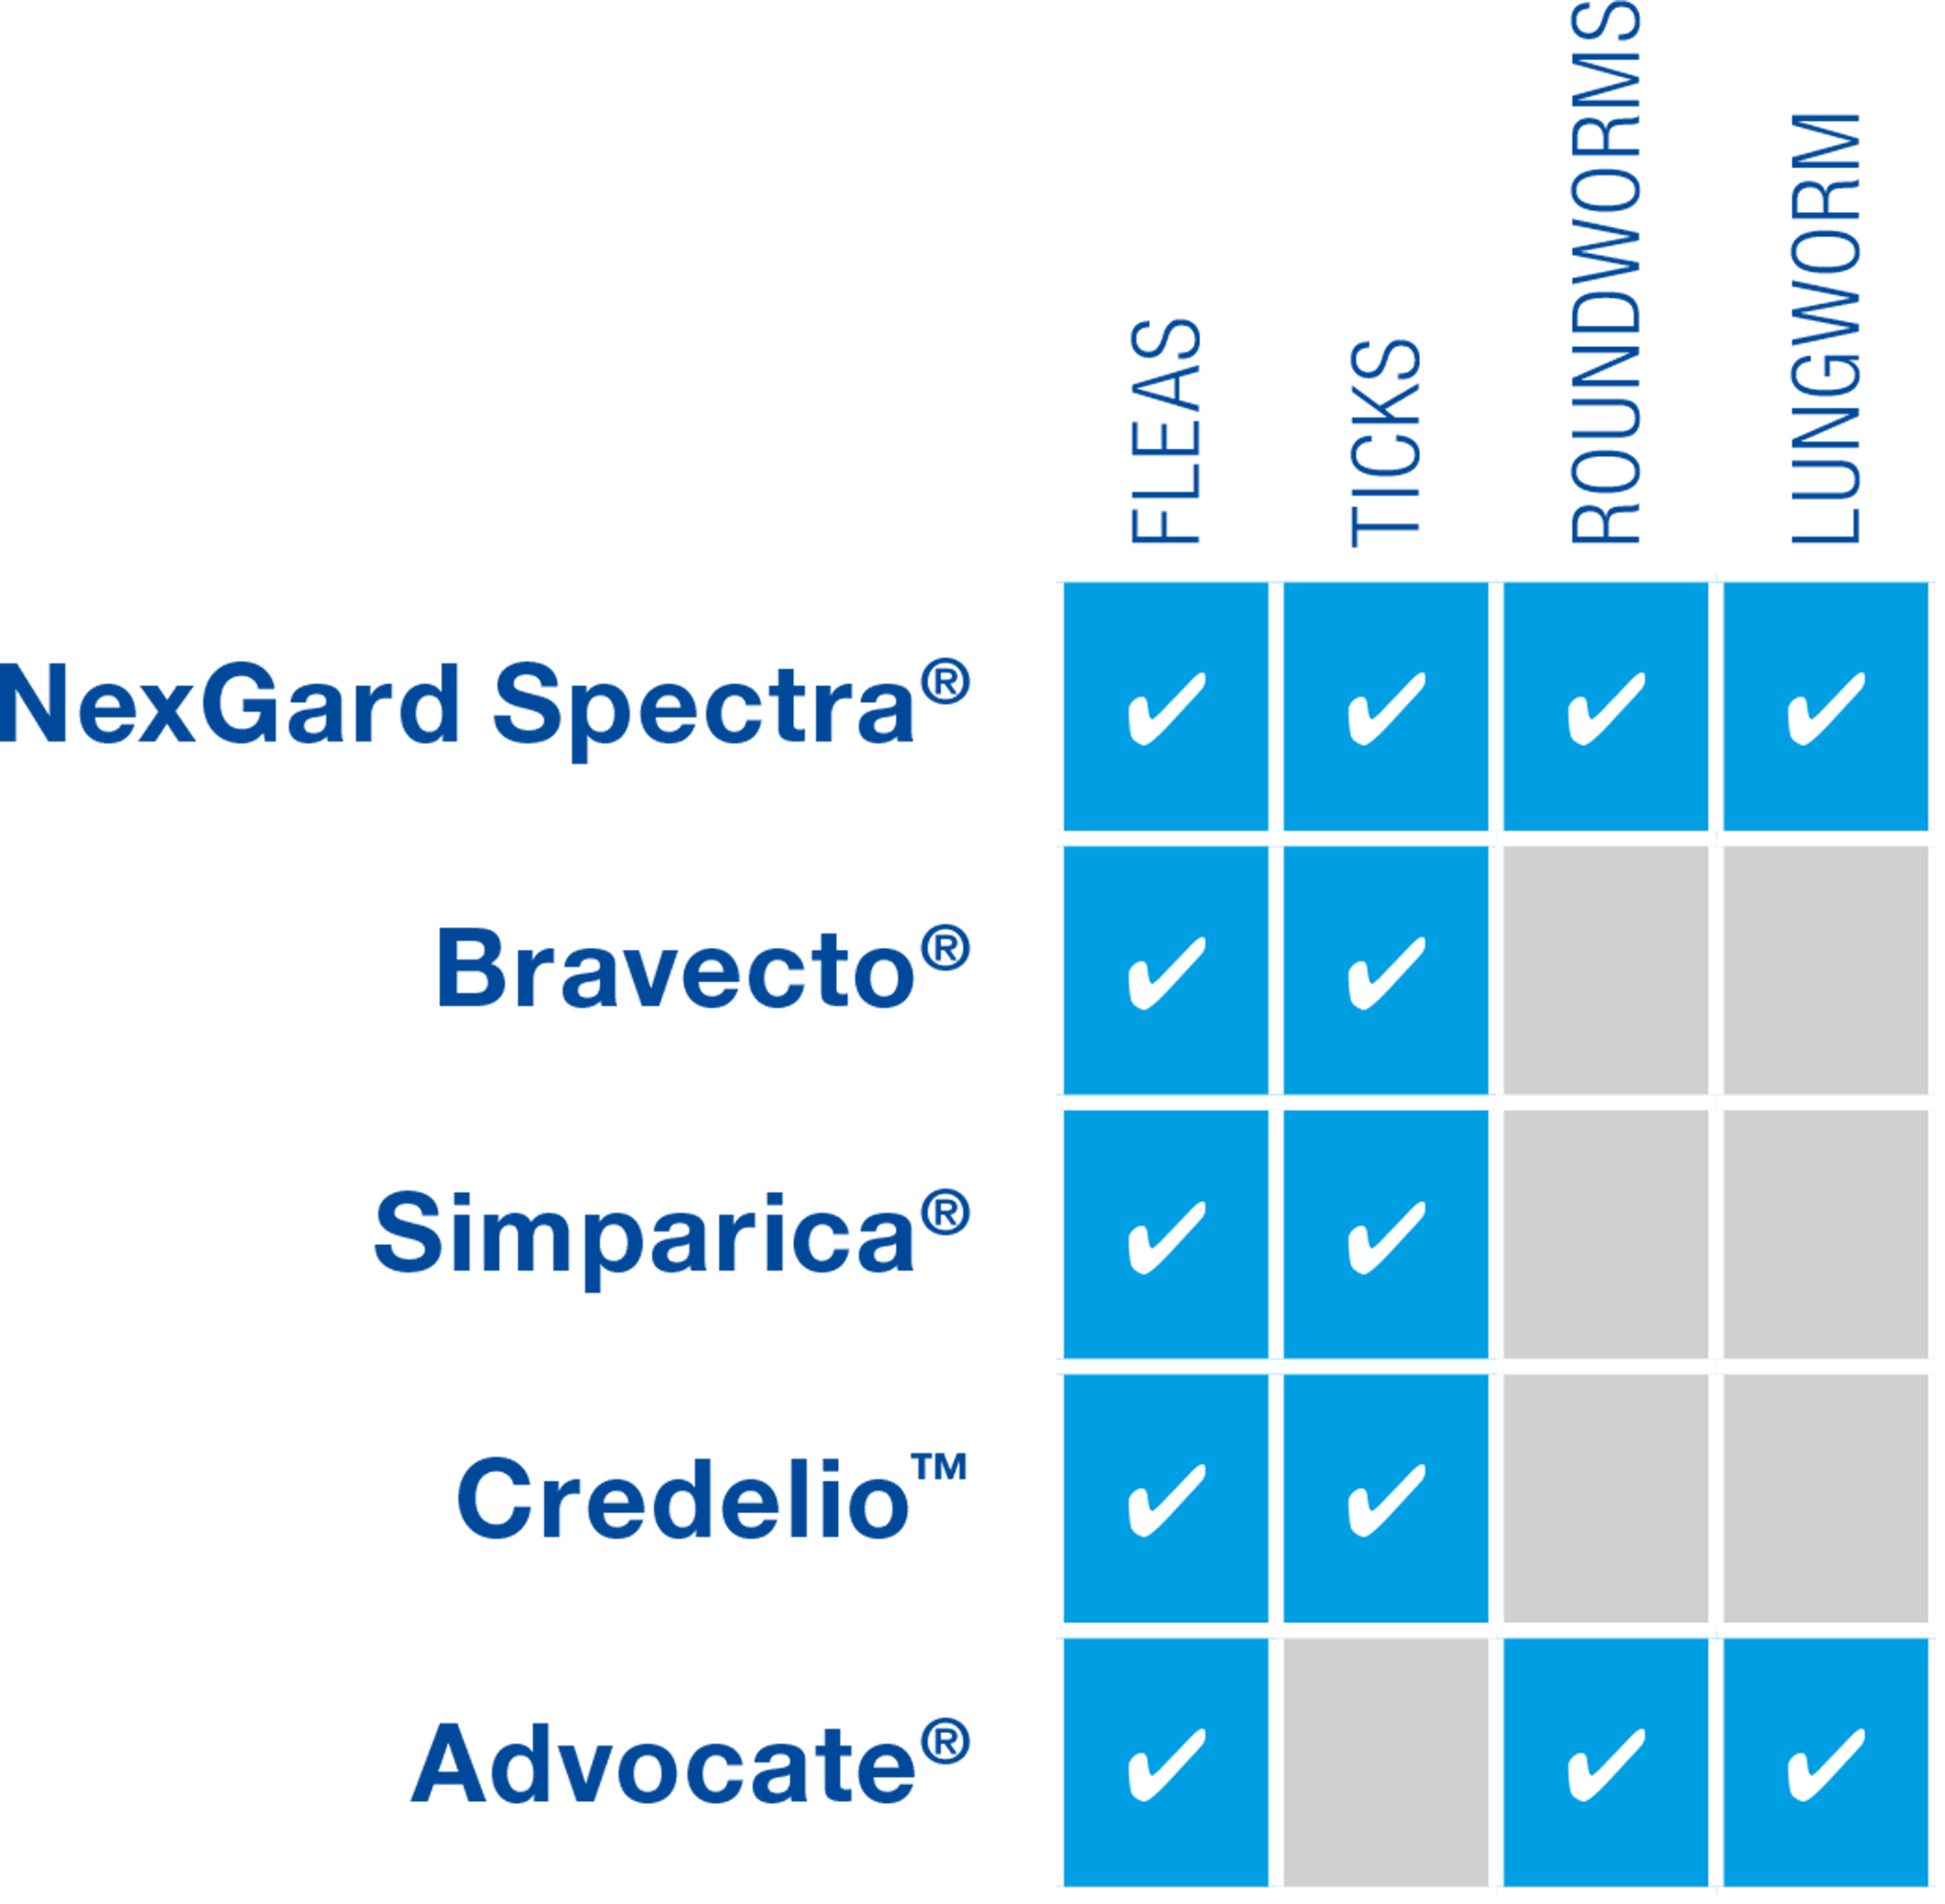 A comparison table of NexGard Spectra, Bravecto, Simparica, Credelio and Advocate. NexGard Spectra acts against all four key parasite threats; fleas, ticks, roundworms and lungworm. Bravecto acts against fleas and ticks. Simparica acts against fleas and ticks. Credelio acts against fleas and ticks. Advocate acts against fleas, lungworm and roundworms.